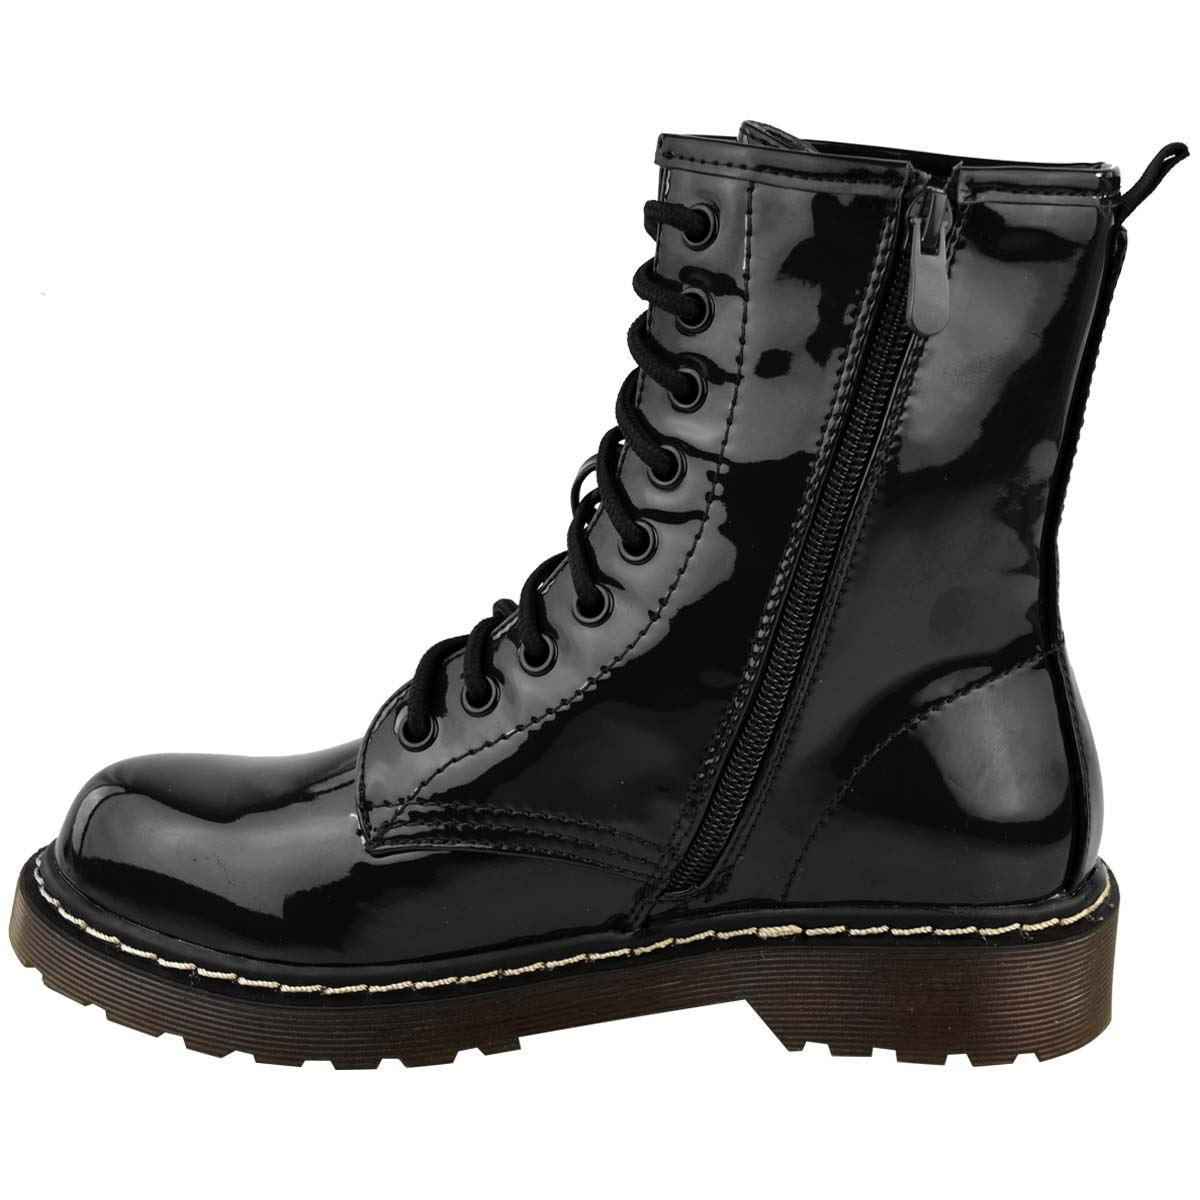 Womens-Ladies-Doc-Ankle-Boots-Low-Flat-Heel-Lace-Up-Worker-Army-Black-Goth-Size miniatuur 8